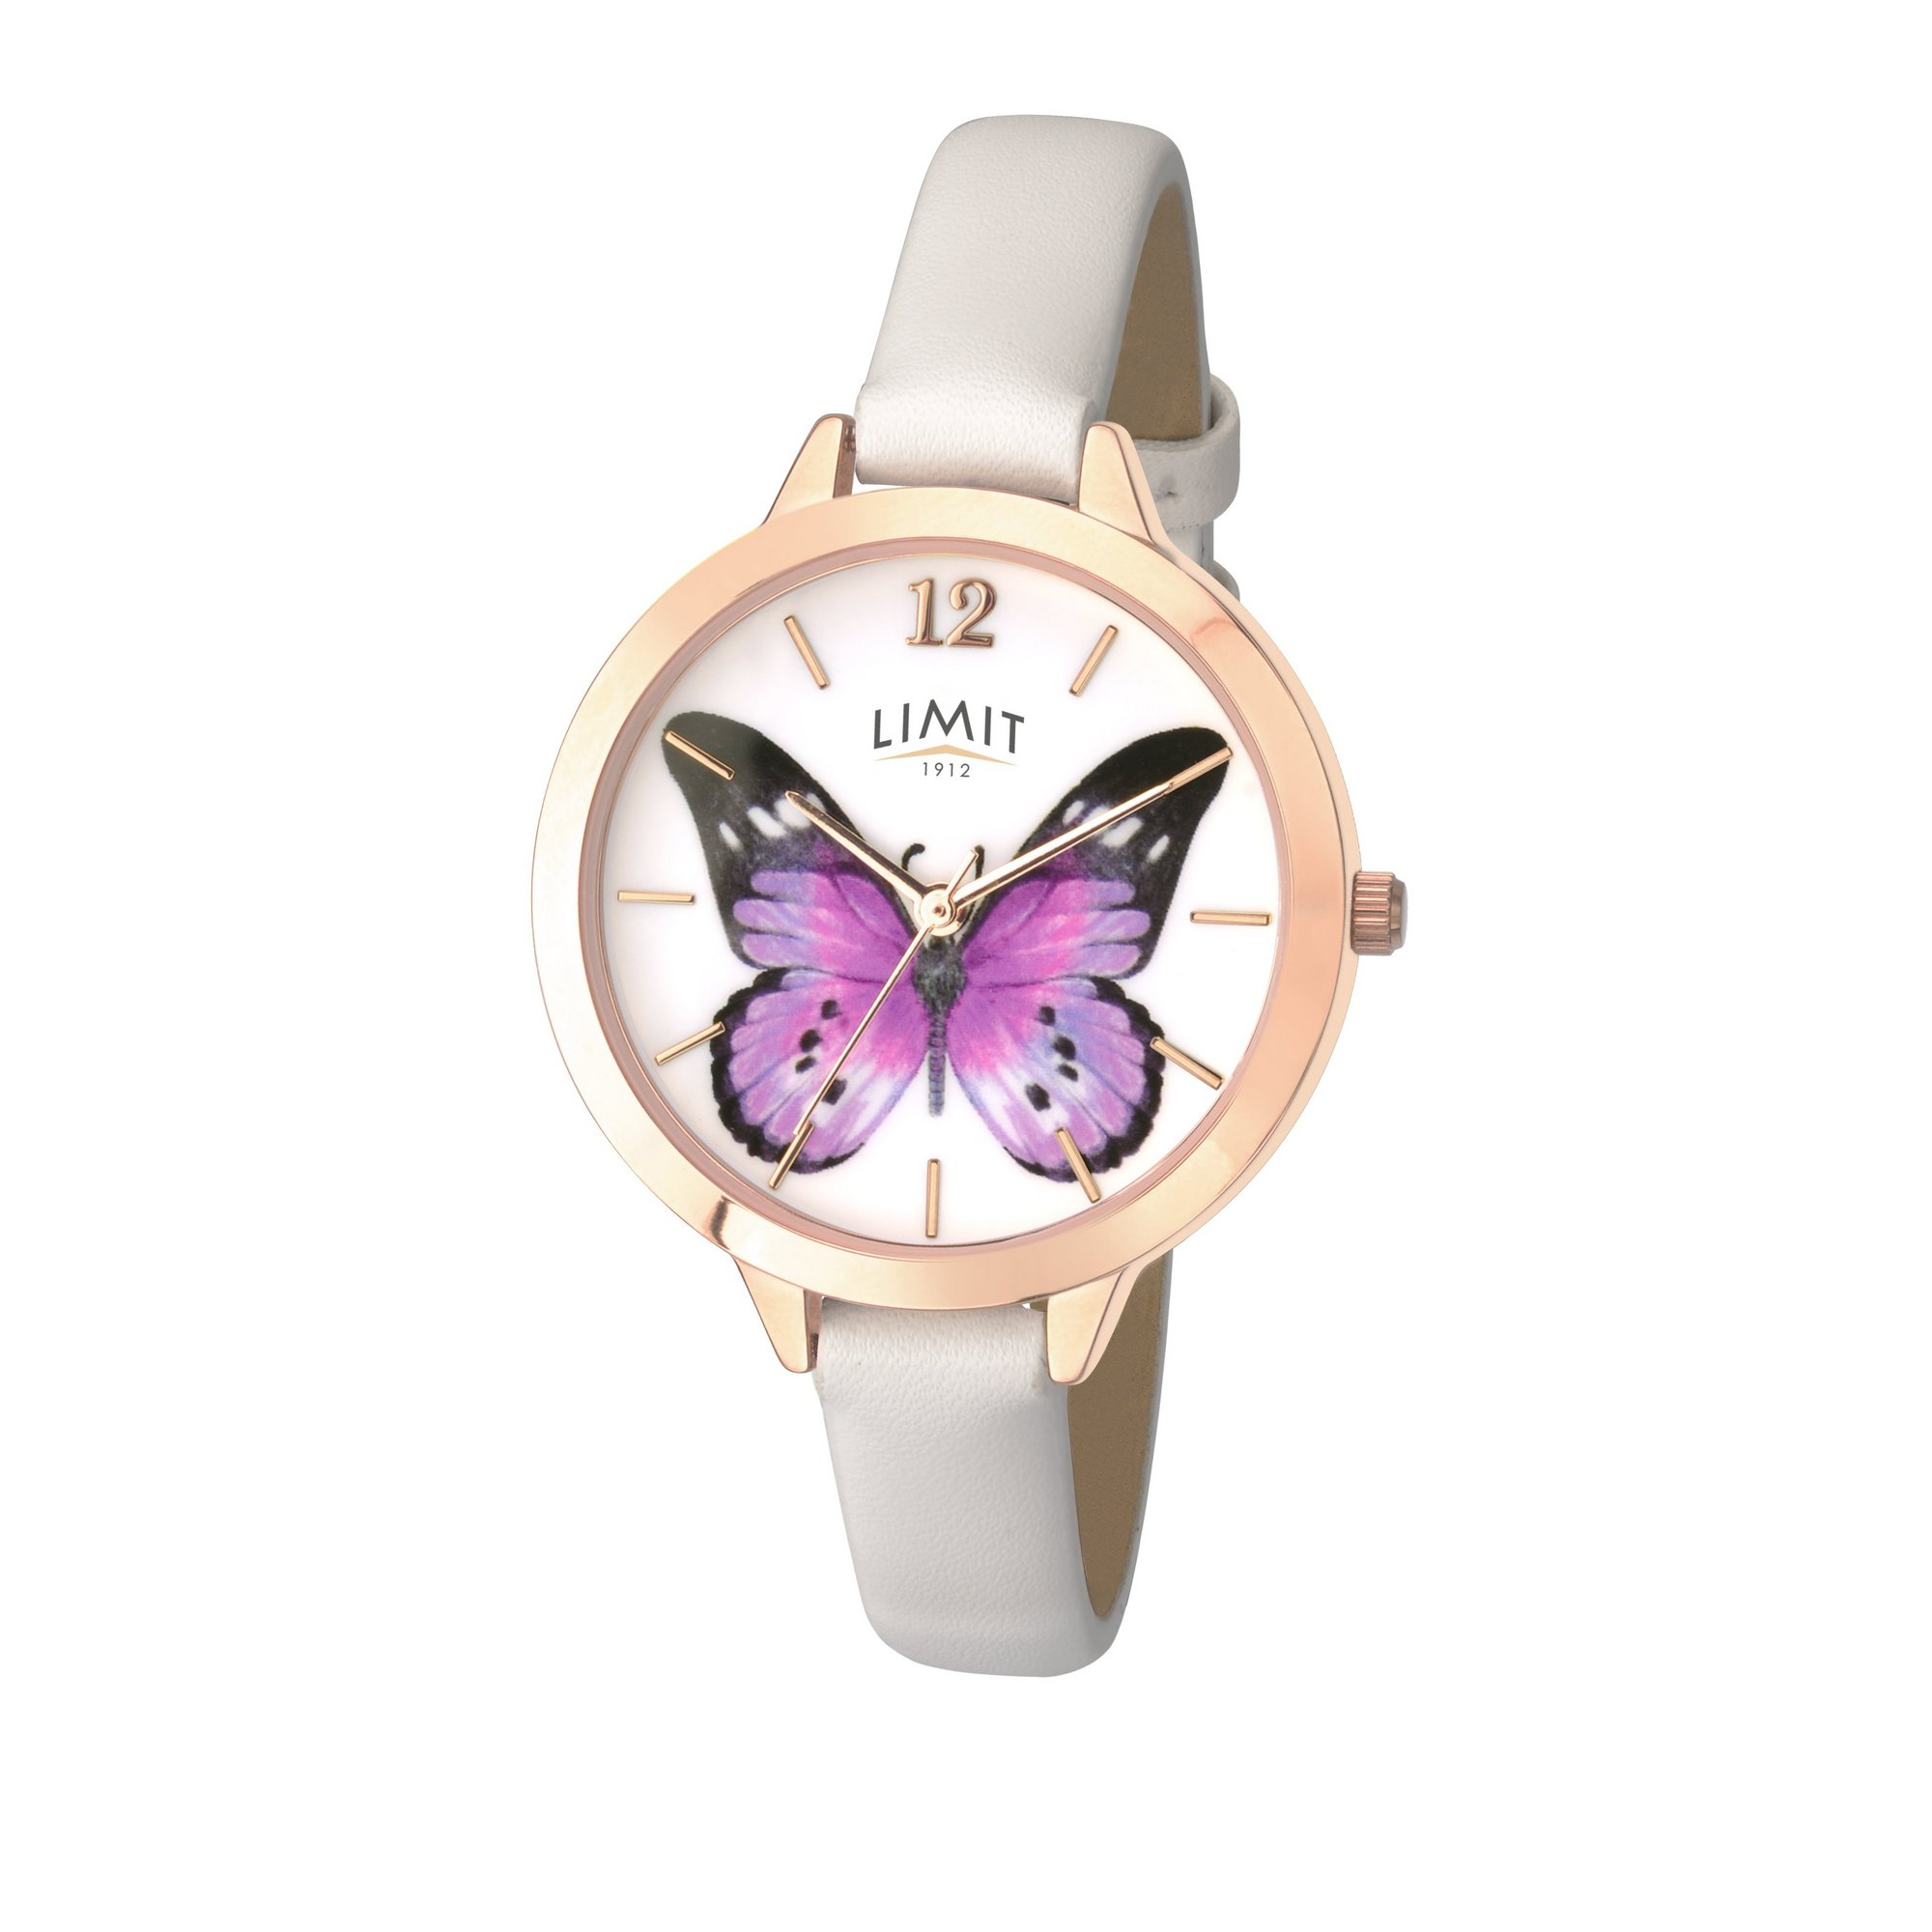 Image of Limit Ladies Gold Plated Leather Strap Watch